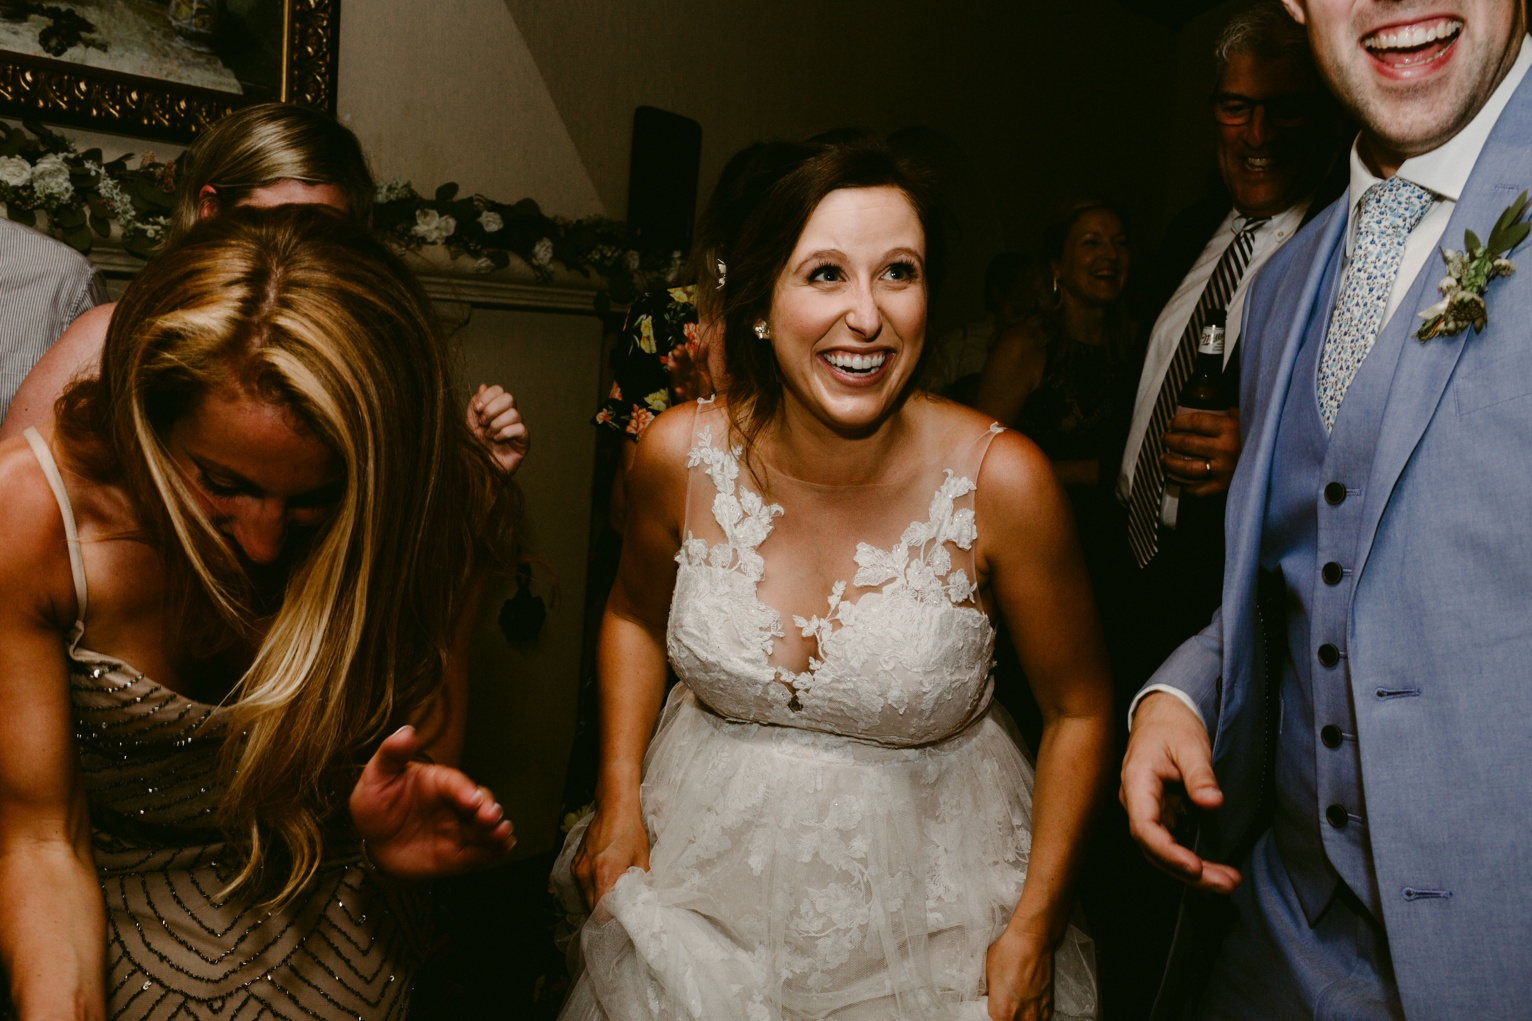 Dreamtownco.com_blog_Nick&Lindsay_Wedding_0172.jpg